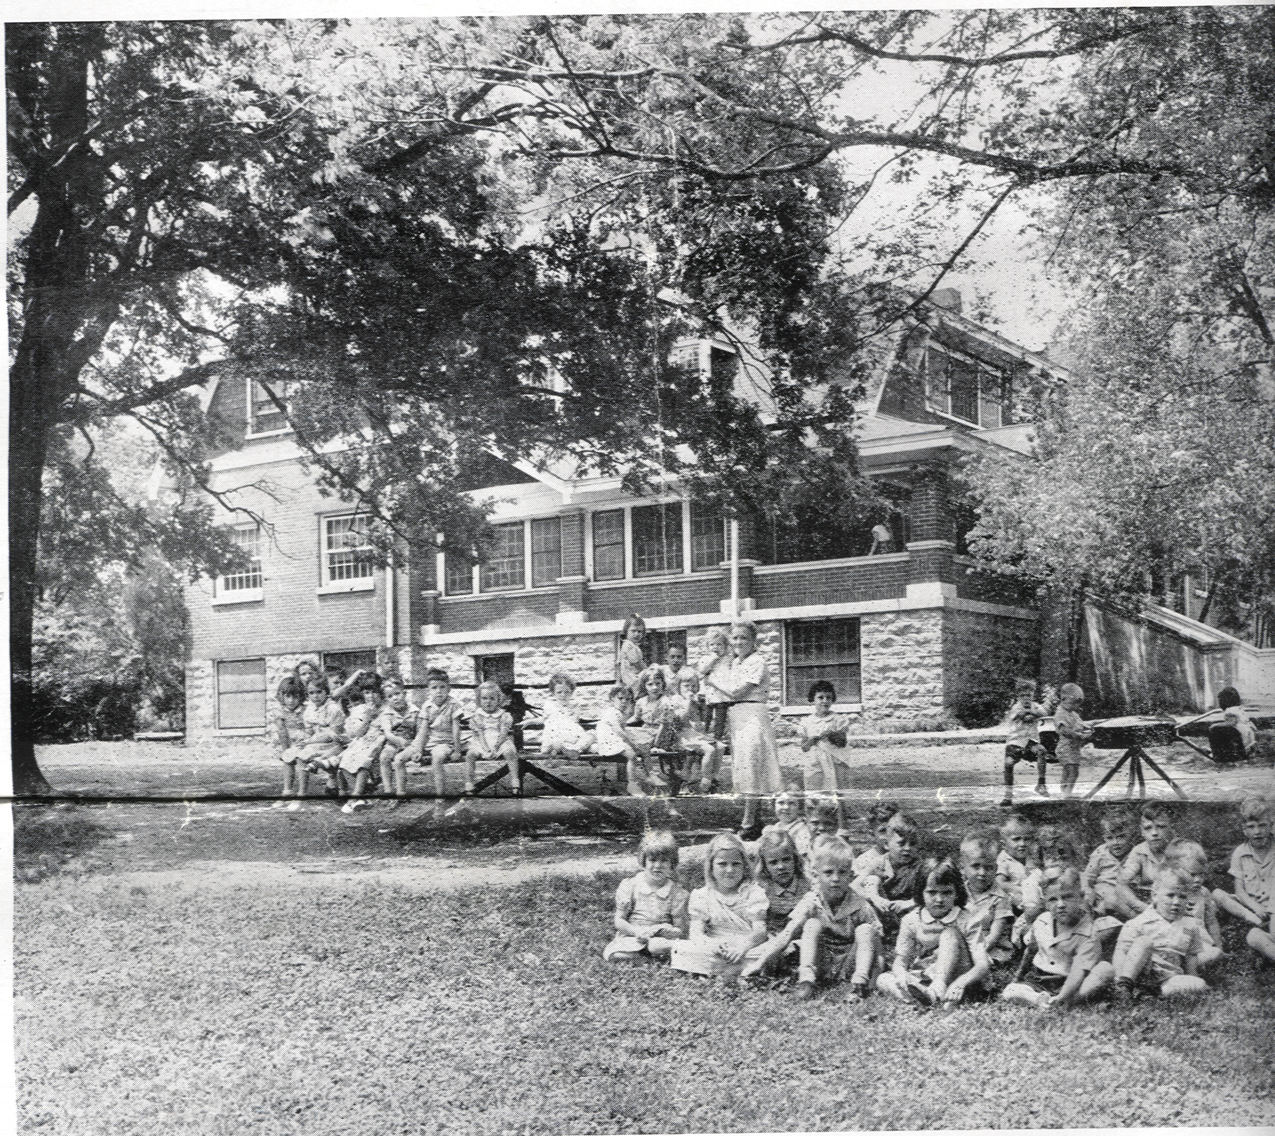 File:TBCH Original Orphanage.jpg - Wikimedia Commons